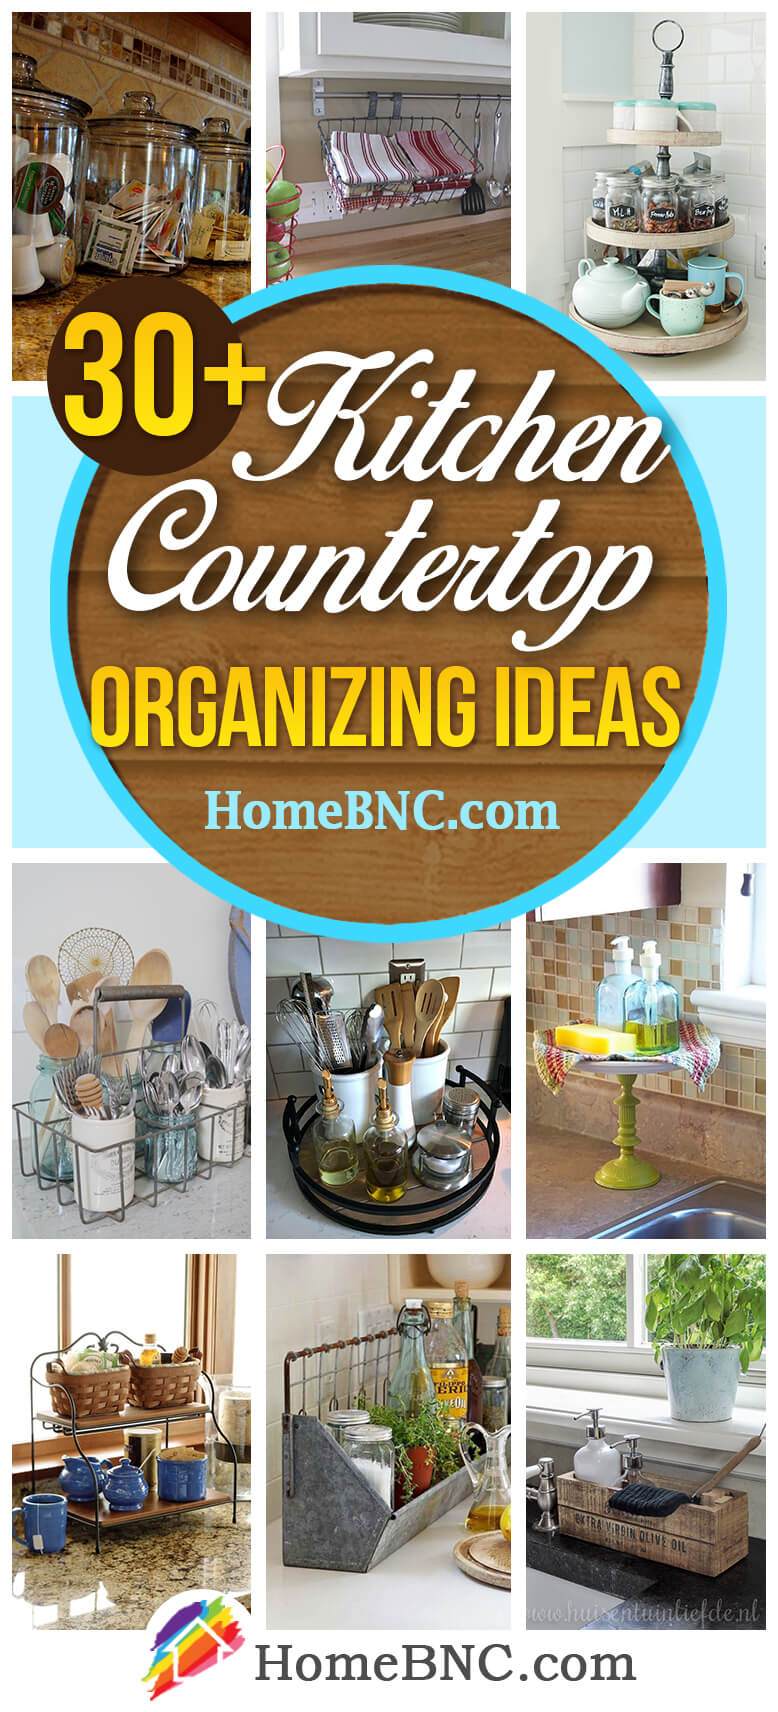 34 Best Kitchen Countertop Organizing Ideas For 2020 In 2020 With